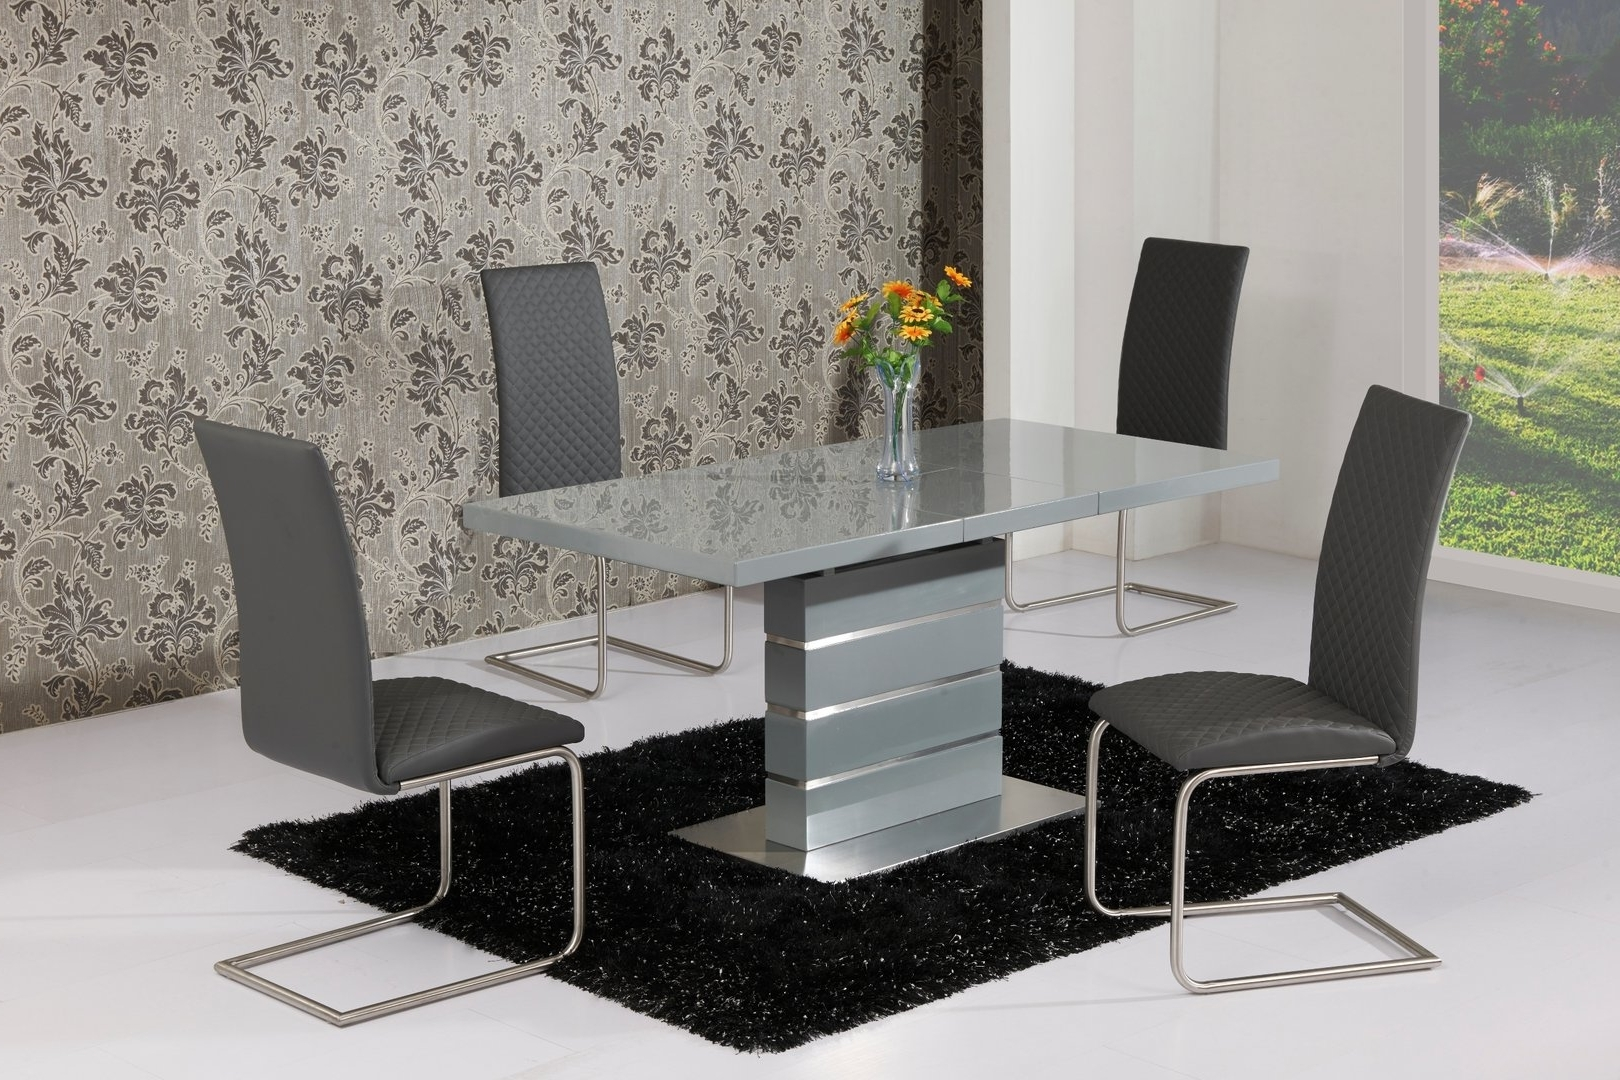 Extending Grey High Gloss Dining Table And 4 Grey Chairs In Current Gloss Dining Tables Sets (Gallery 5 of 25)